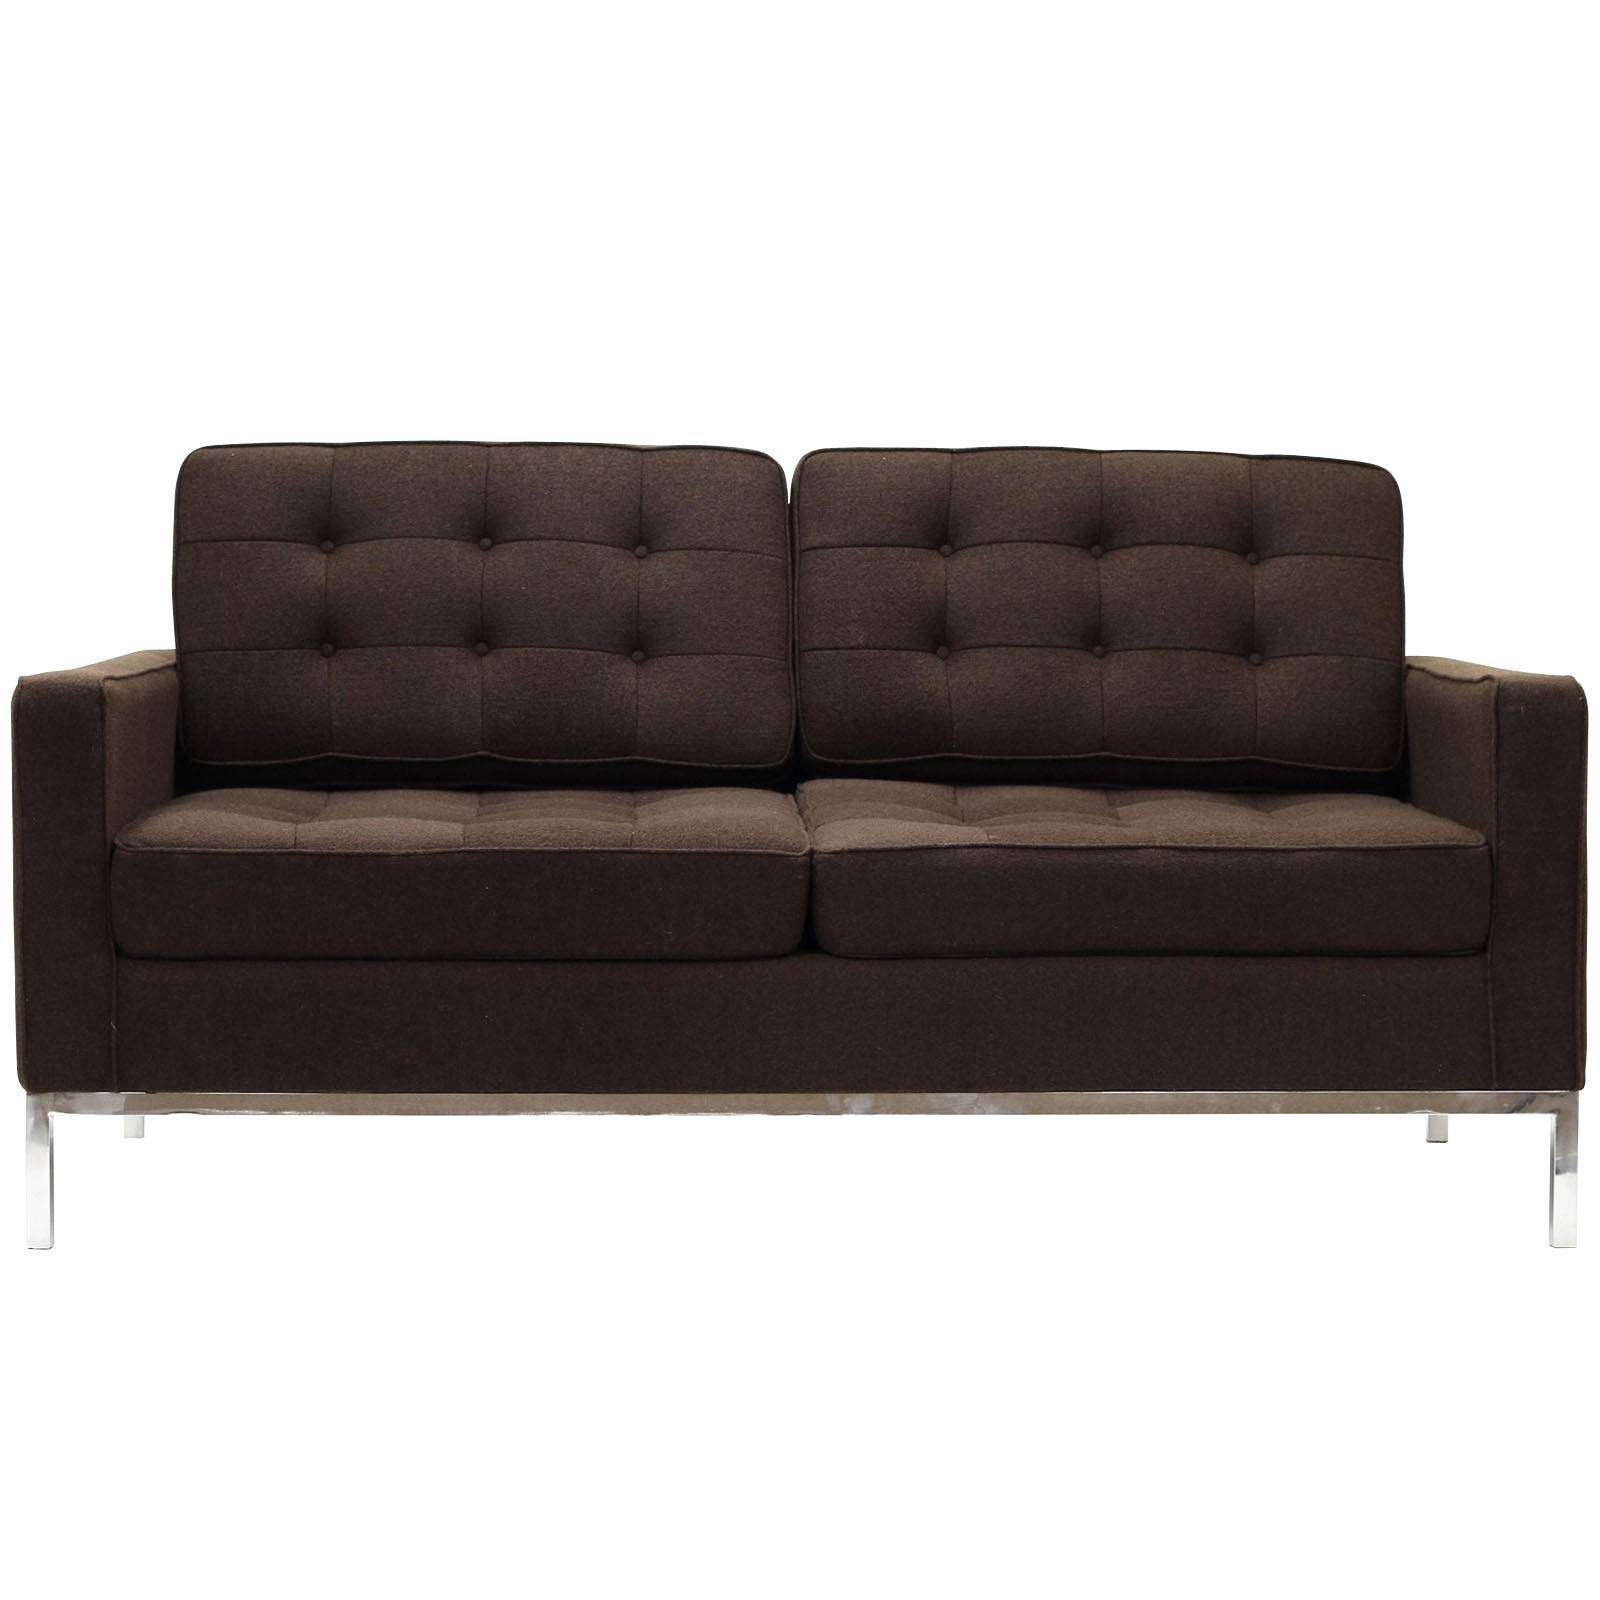 Florence Knoll Style Loveseat Couch Wool